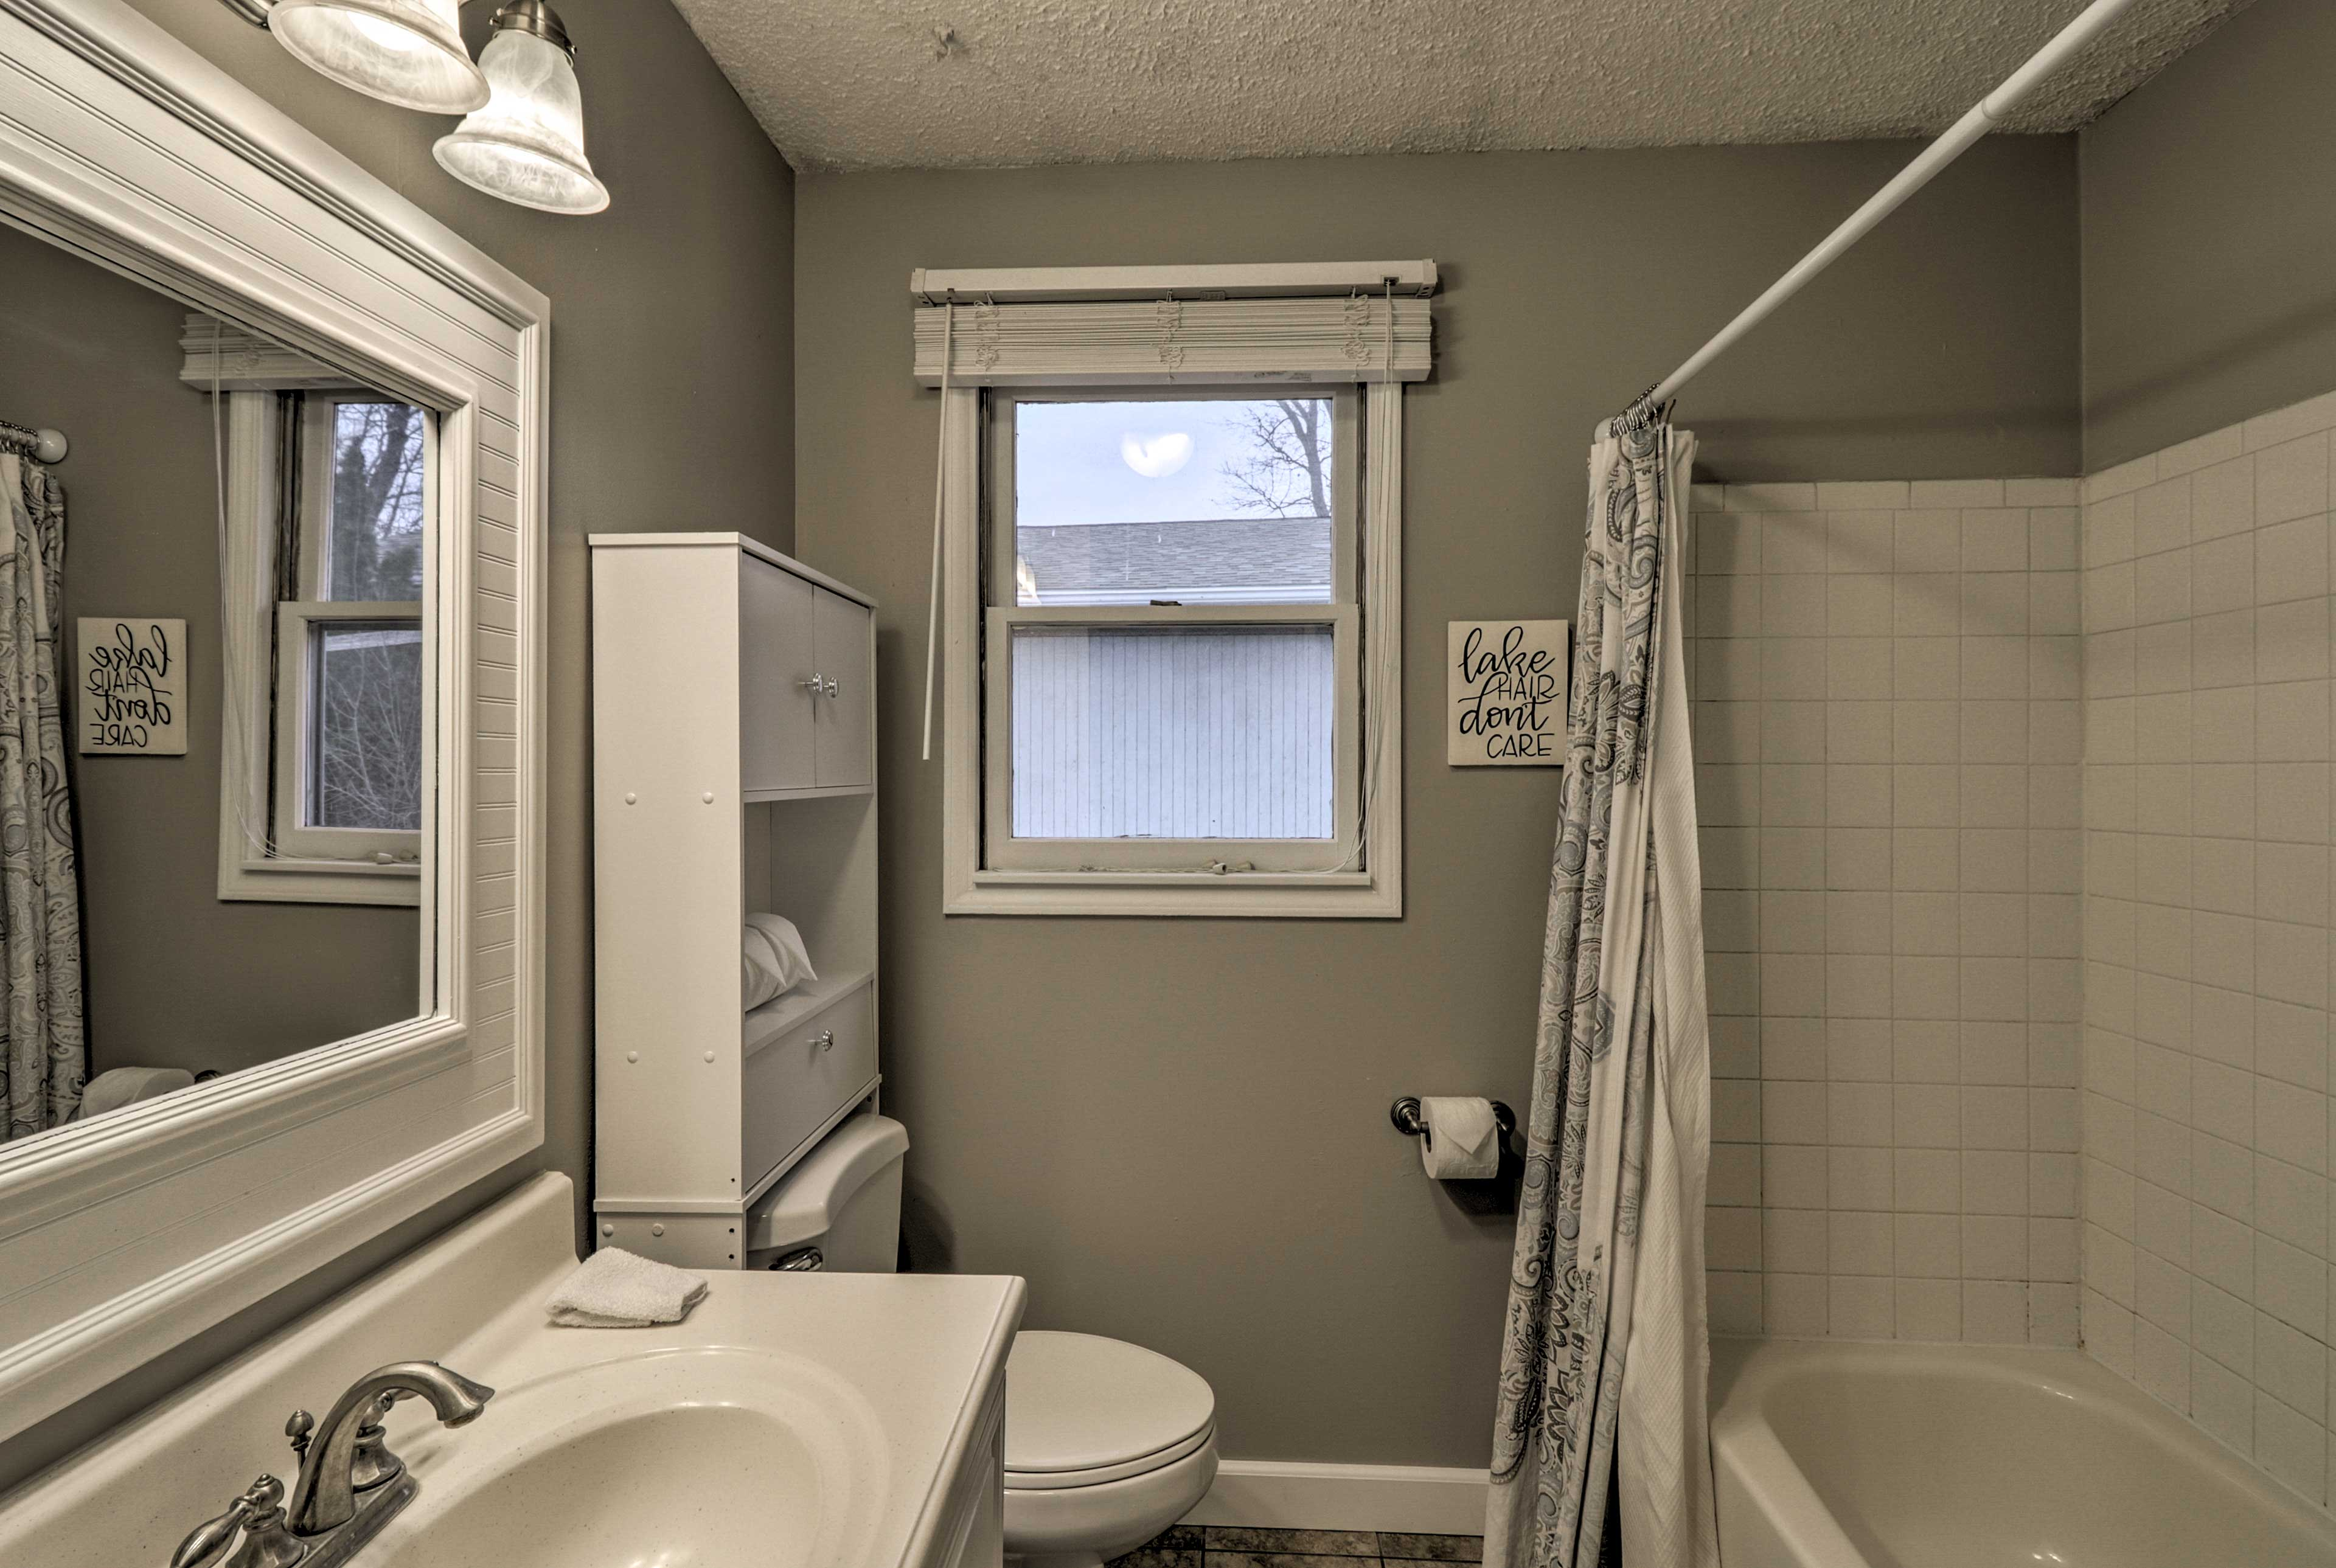 Rinse off in the first full bathroom's shower/tub combo.